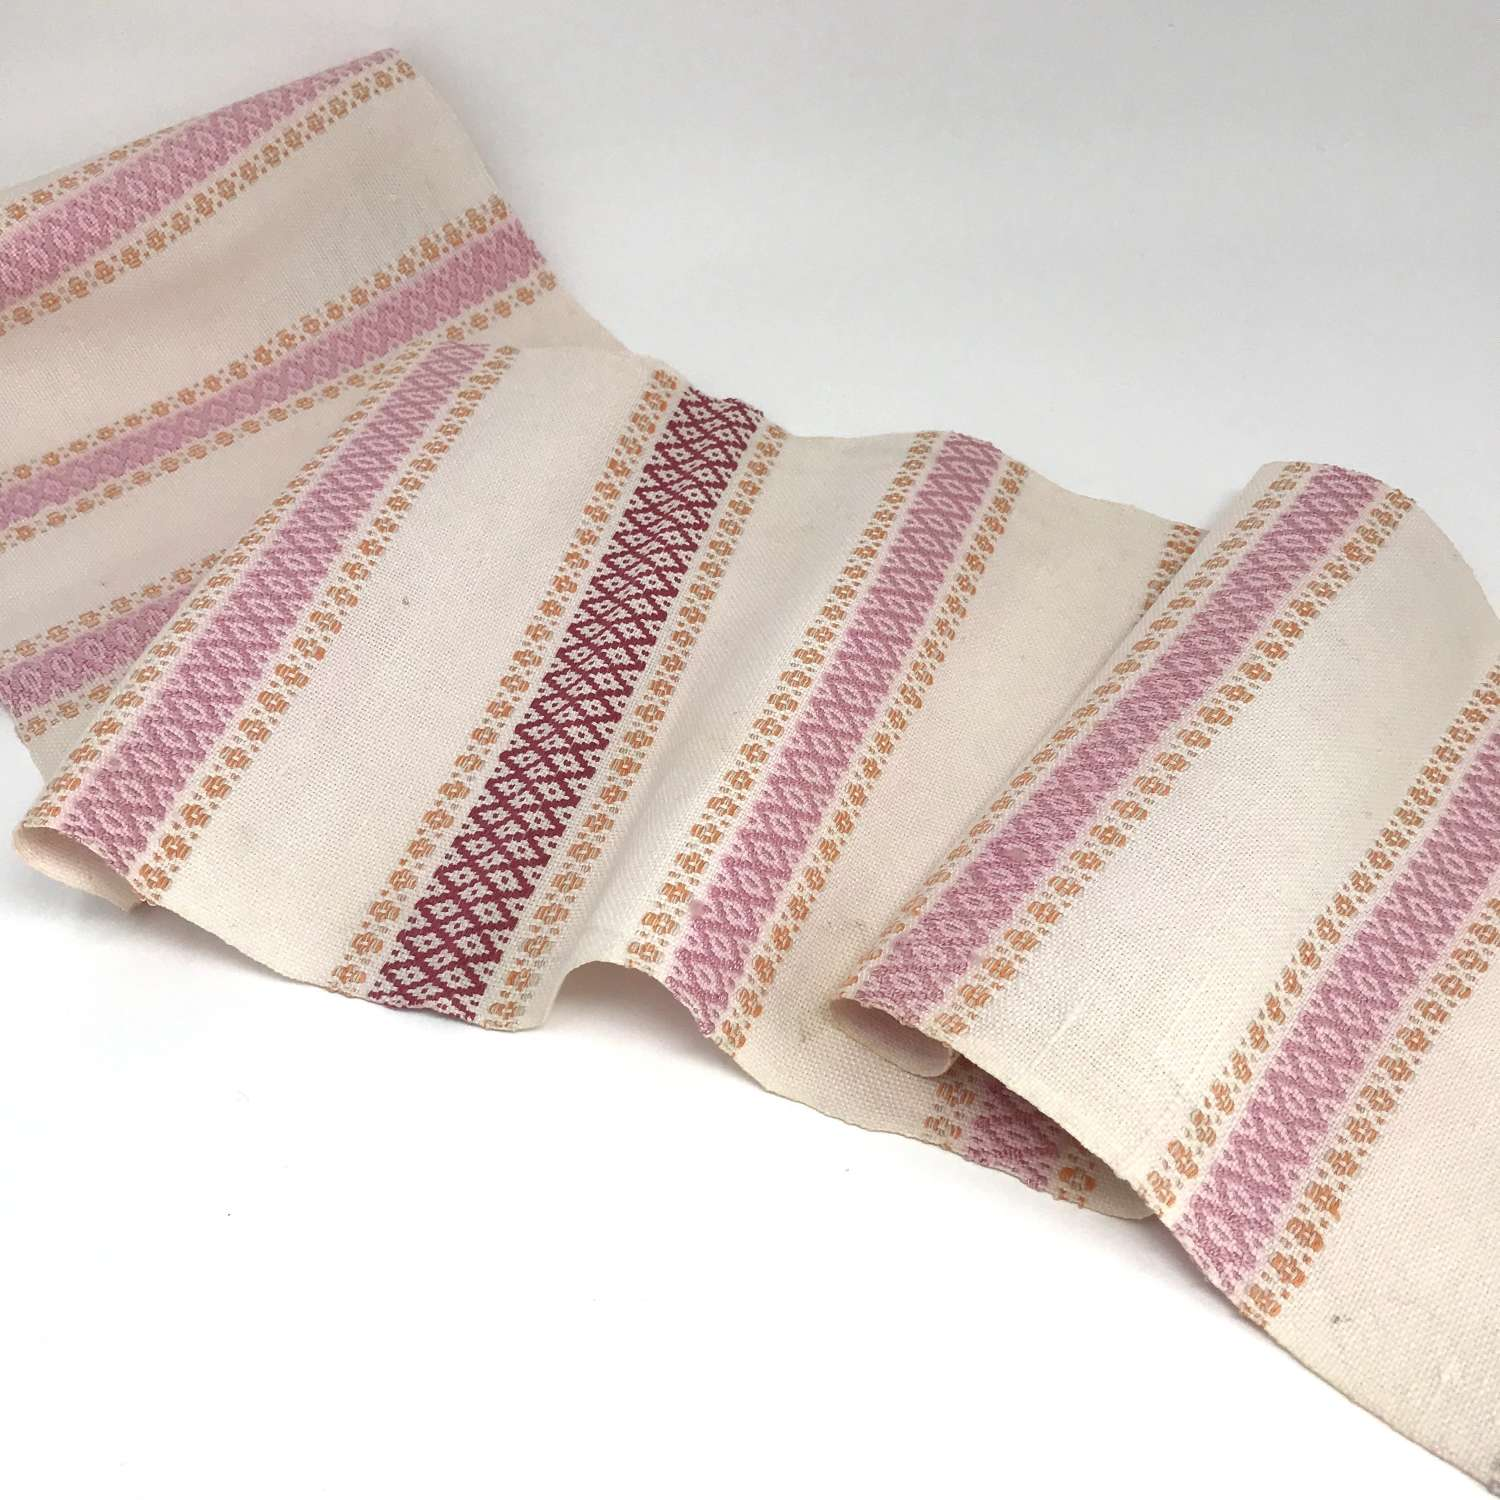 Swedish Handwoven and Embroidered Table Runner Pink and Orange Pattern